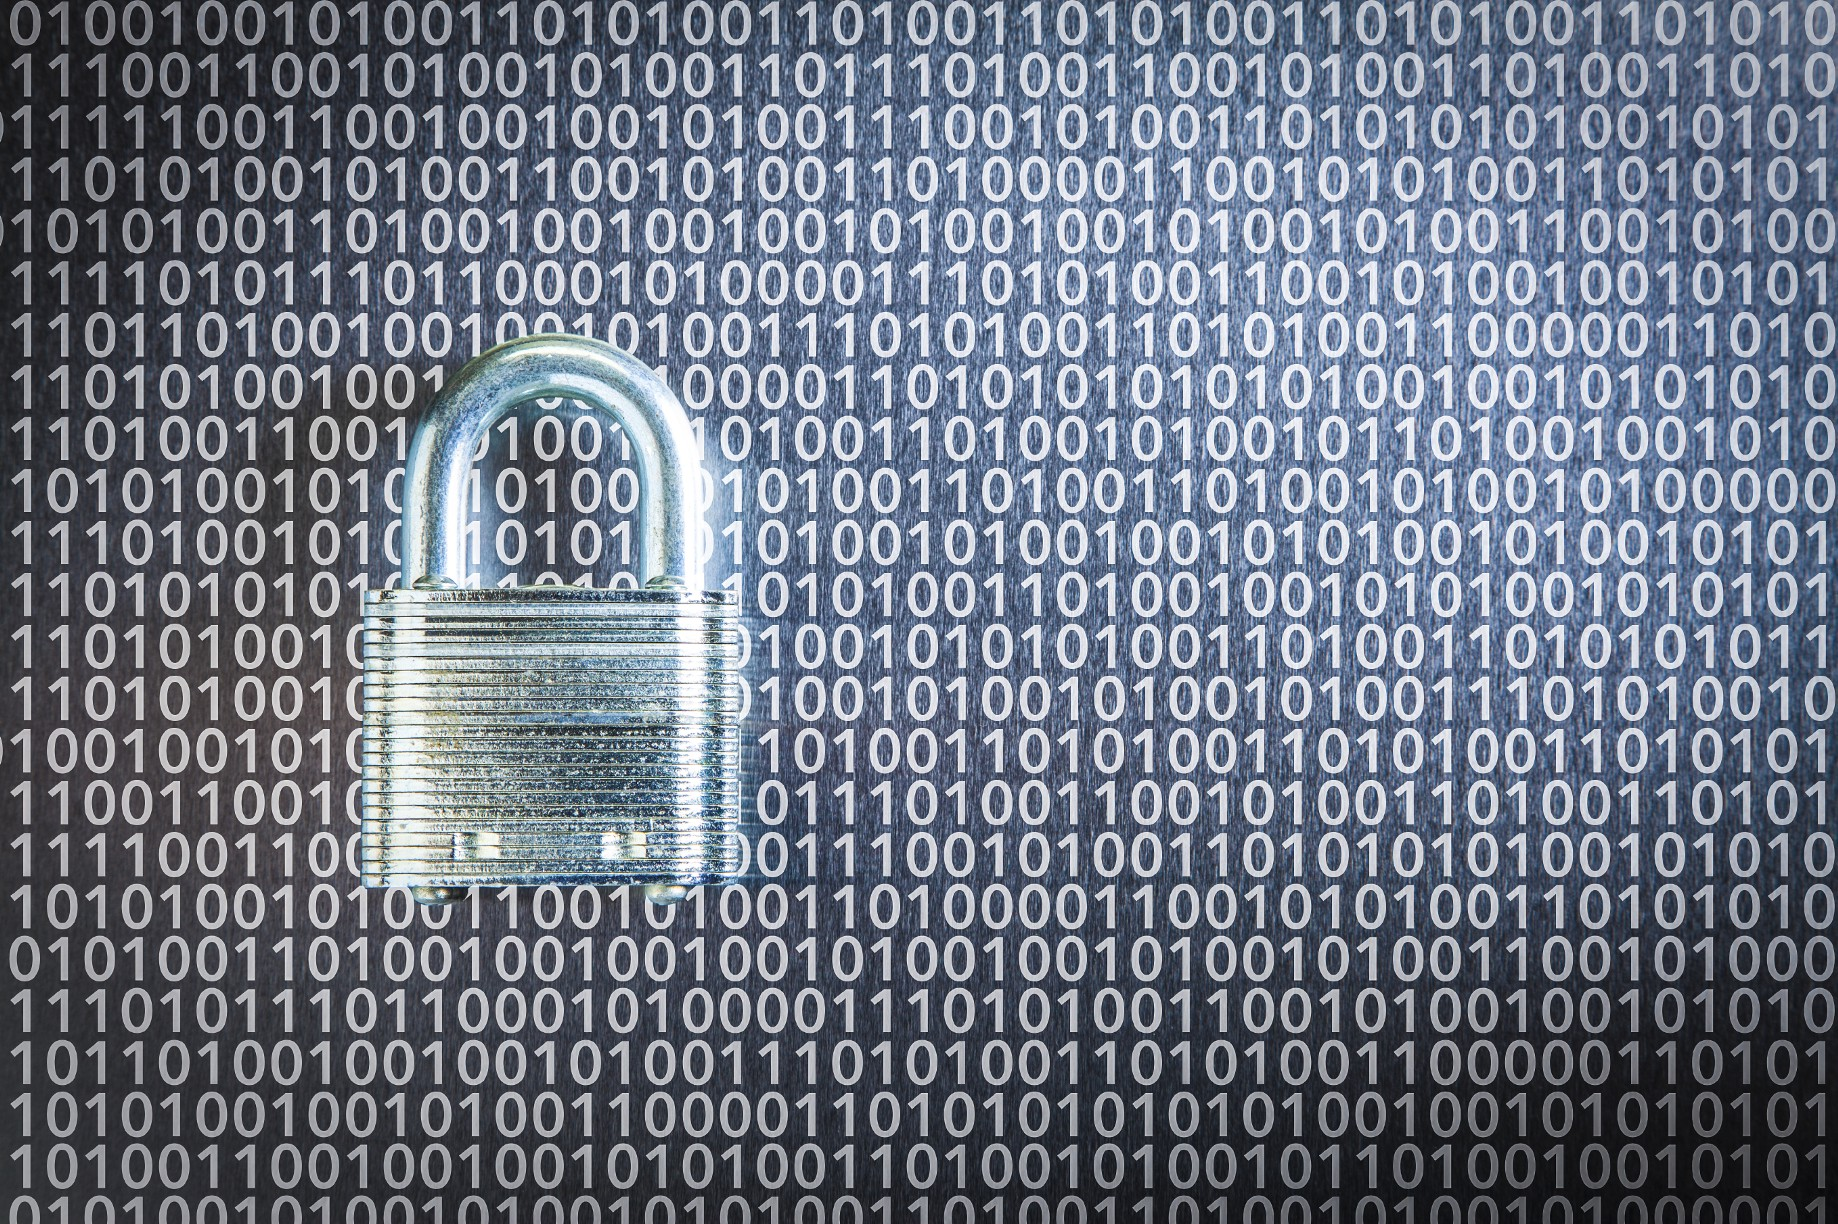 What's the deal with encryption strength —is 128 bit encryption